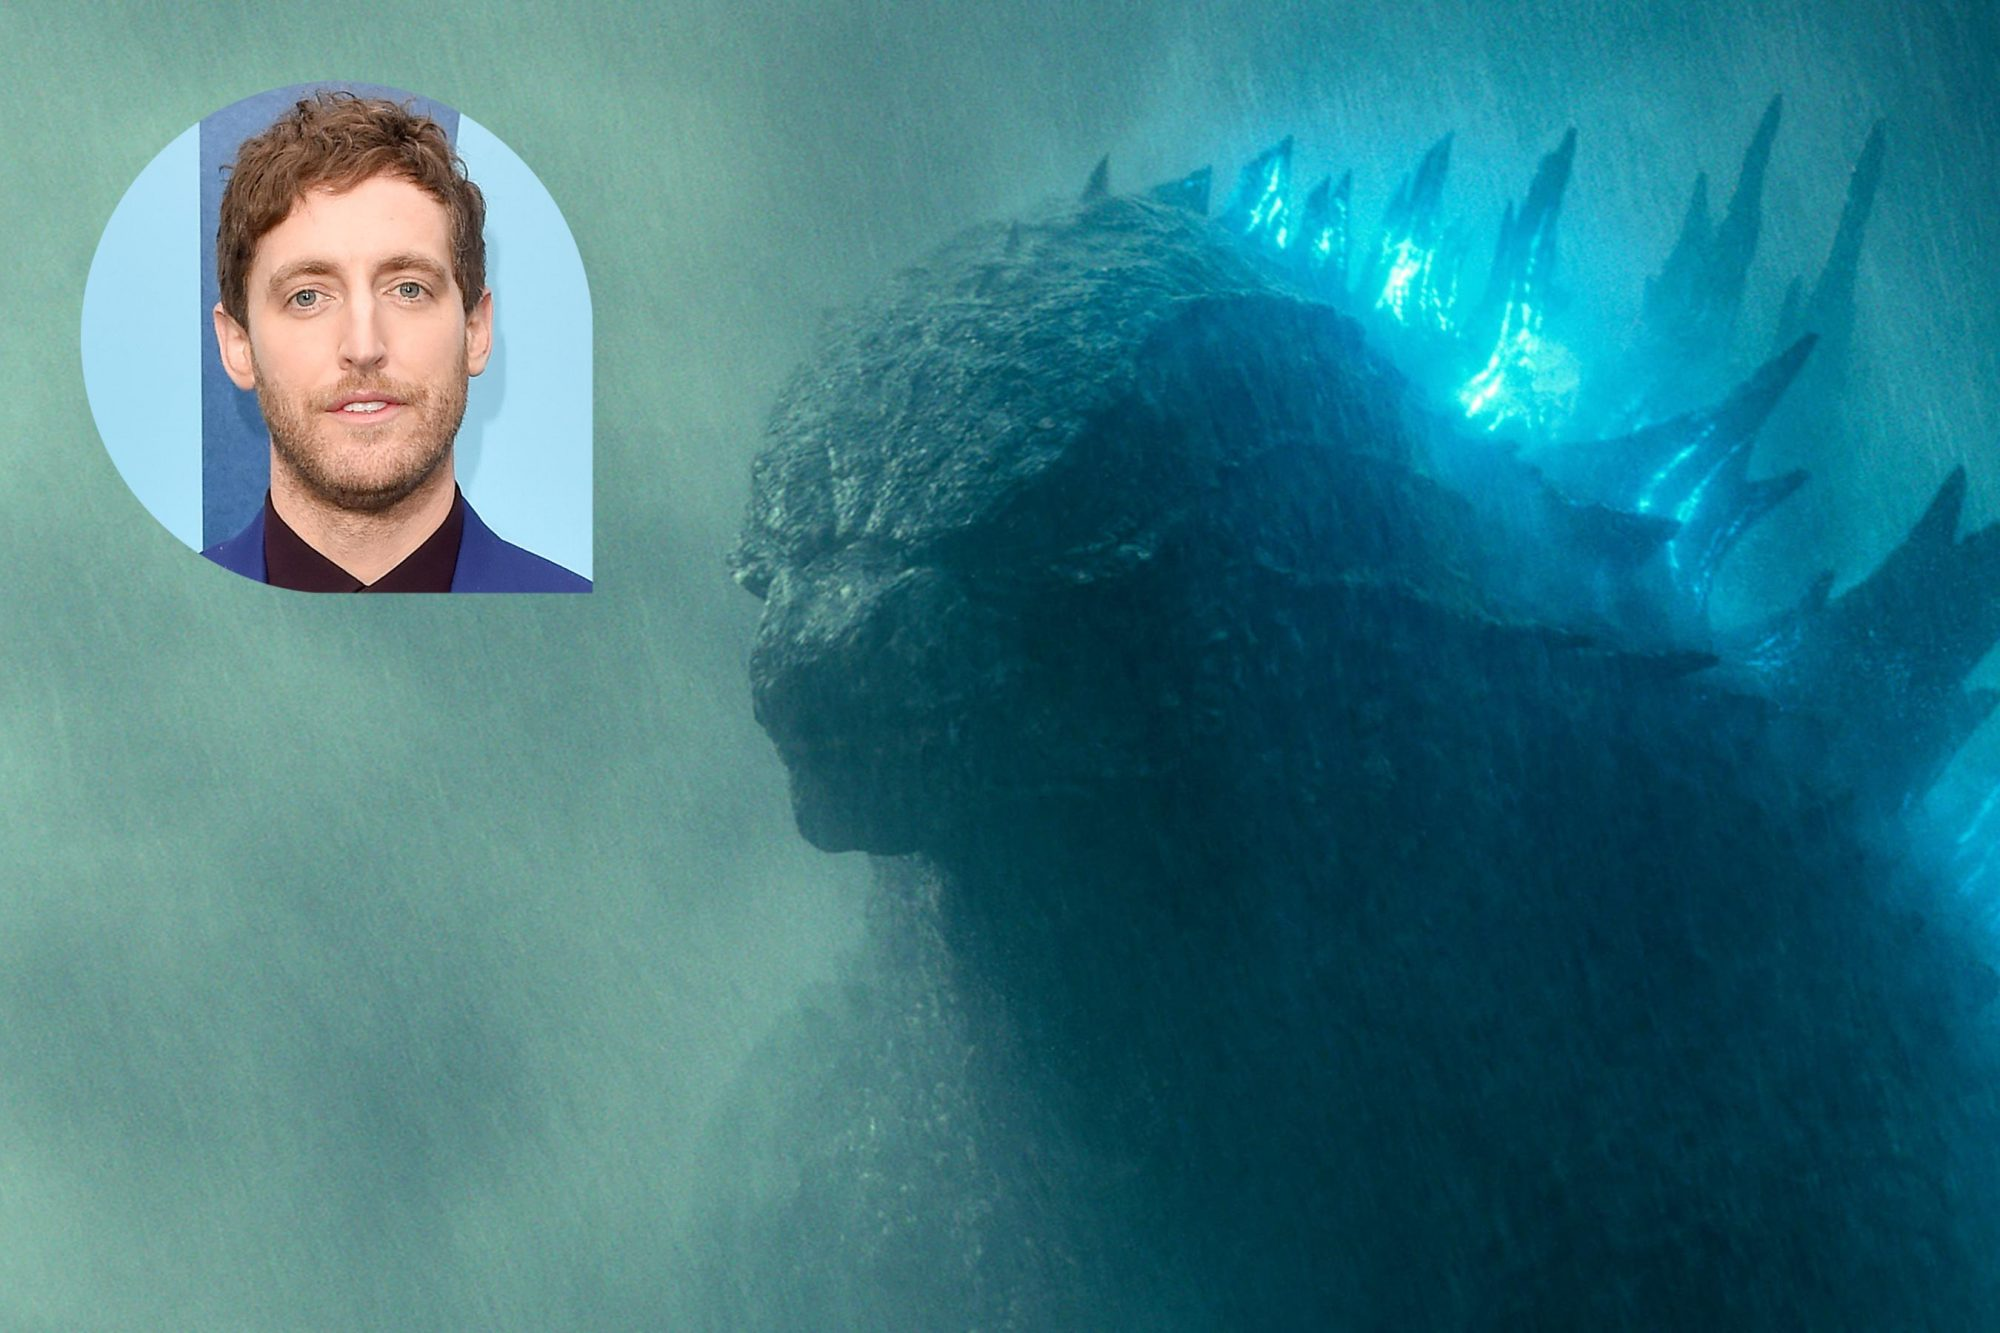 "GODZILLA: KING OF THE MONSTERS Copyright: © 2019 WARNER BROS. ENTERTAINMENT INC. AND LEGENDARY PICTURES PRODUCTIONS, LLC Photo Credit: Courtesy of Warner Bros. Pictures Caption: GODZILLA in Warner Bros. Pictures' and Legendary Pictures' action adventure ""GODZILLA: KING OF THE MONSTERS,"" a Warner Bros. Pictures release. HOLLYWOOD, CALIFORNIA - MAY 18: Thomas Middleditch attends the premiere of Warner Bros. Pictures and Legendary Pictures' ""Godzilla: King of the Monsters"" at TCL Chinese Theatre on May 18, 2019 in Hollywood, California. (Photo by Axelle/Bauer-Griffin/FilmMagic)"